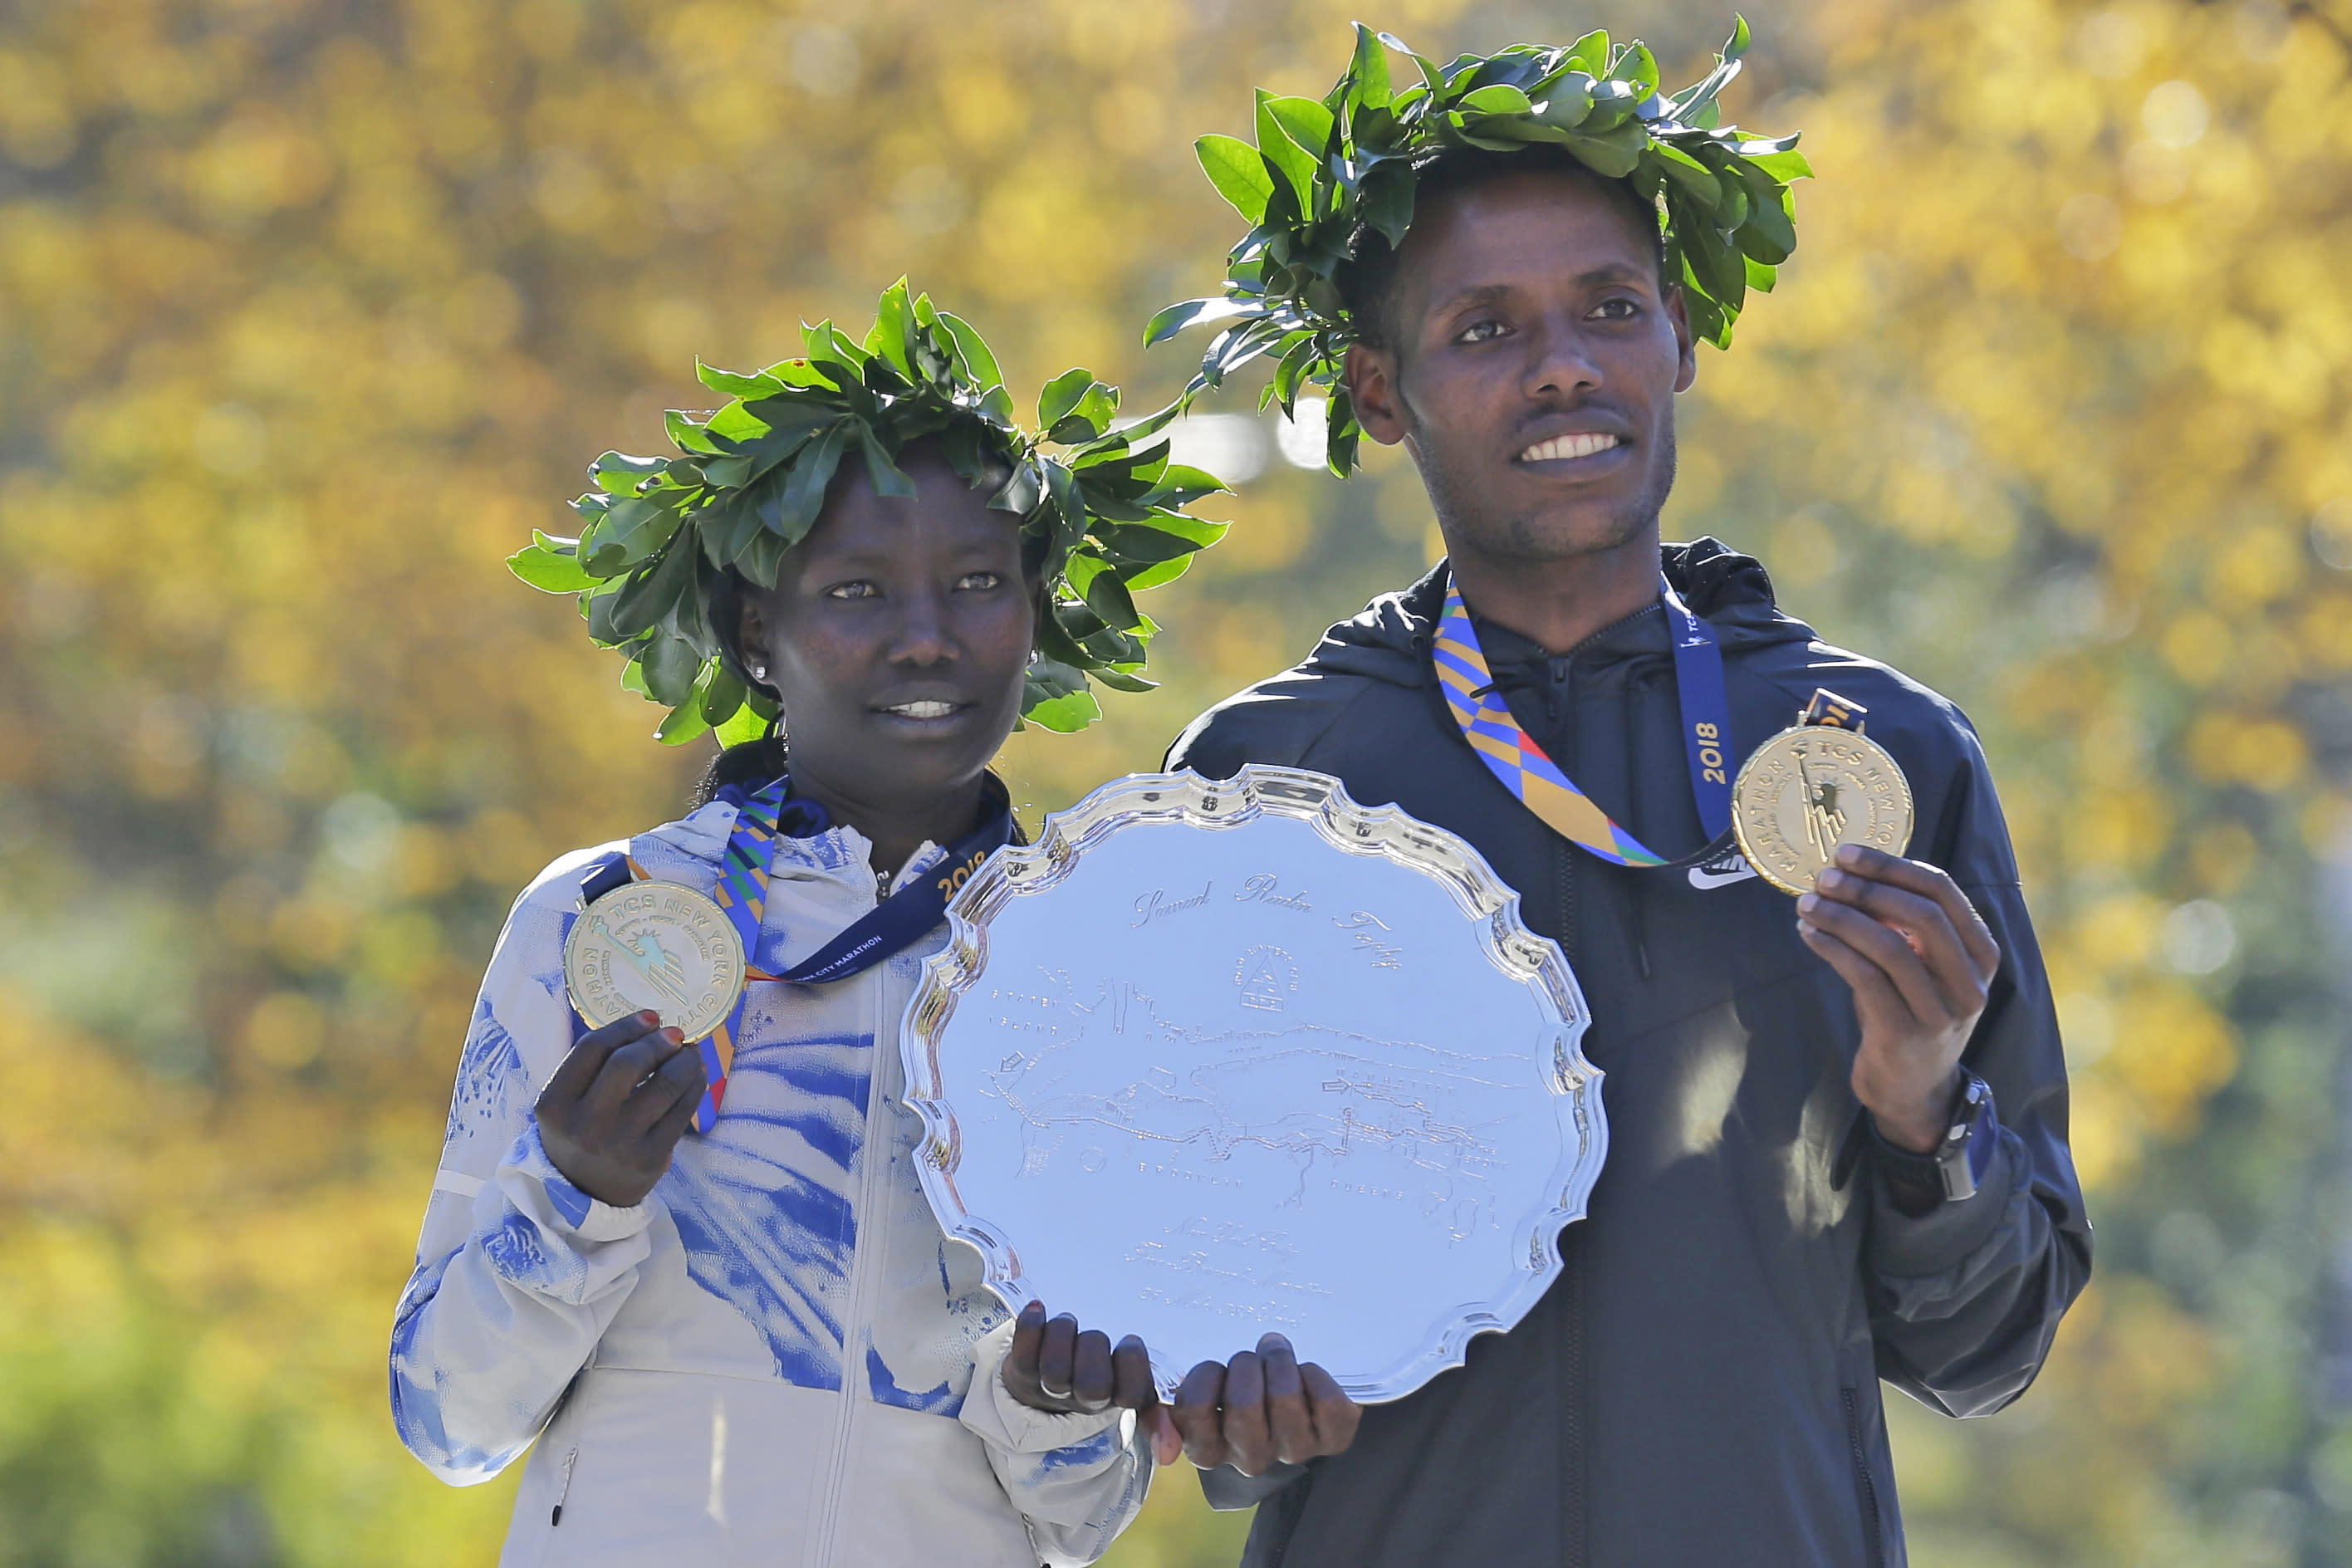 <p>First-place finishers Mary Keitany of Kenya, left, and Lelisa Desisa of Ethiopia pose for a picture at the finish line of the New York City Marathon in New York, Nov. 4, 2018. (Photo: Seth Wenig/AP) </p>